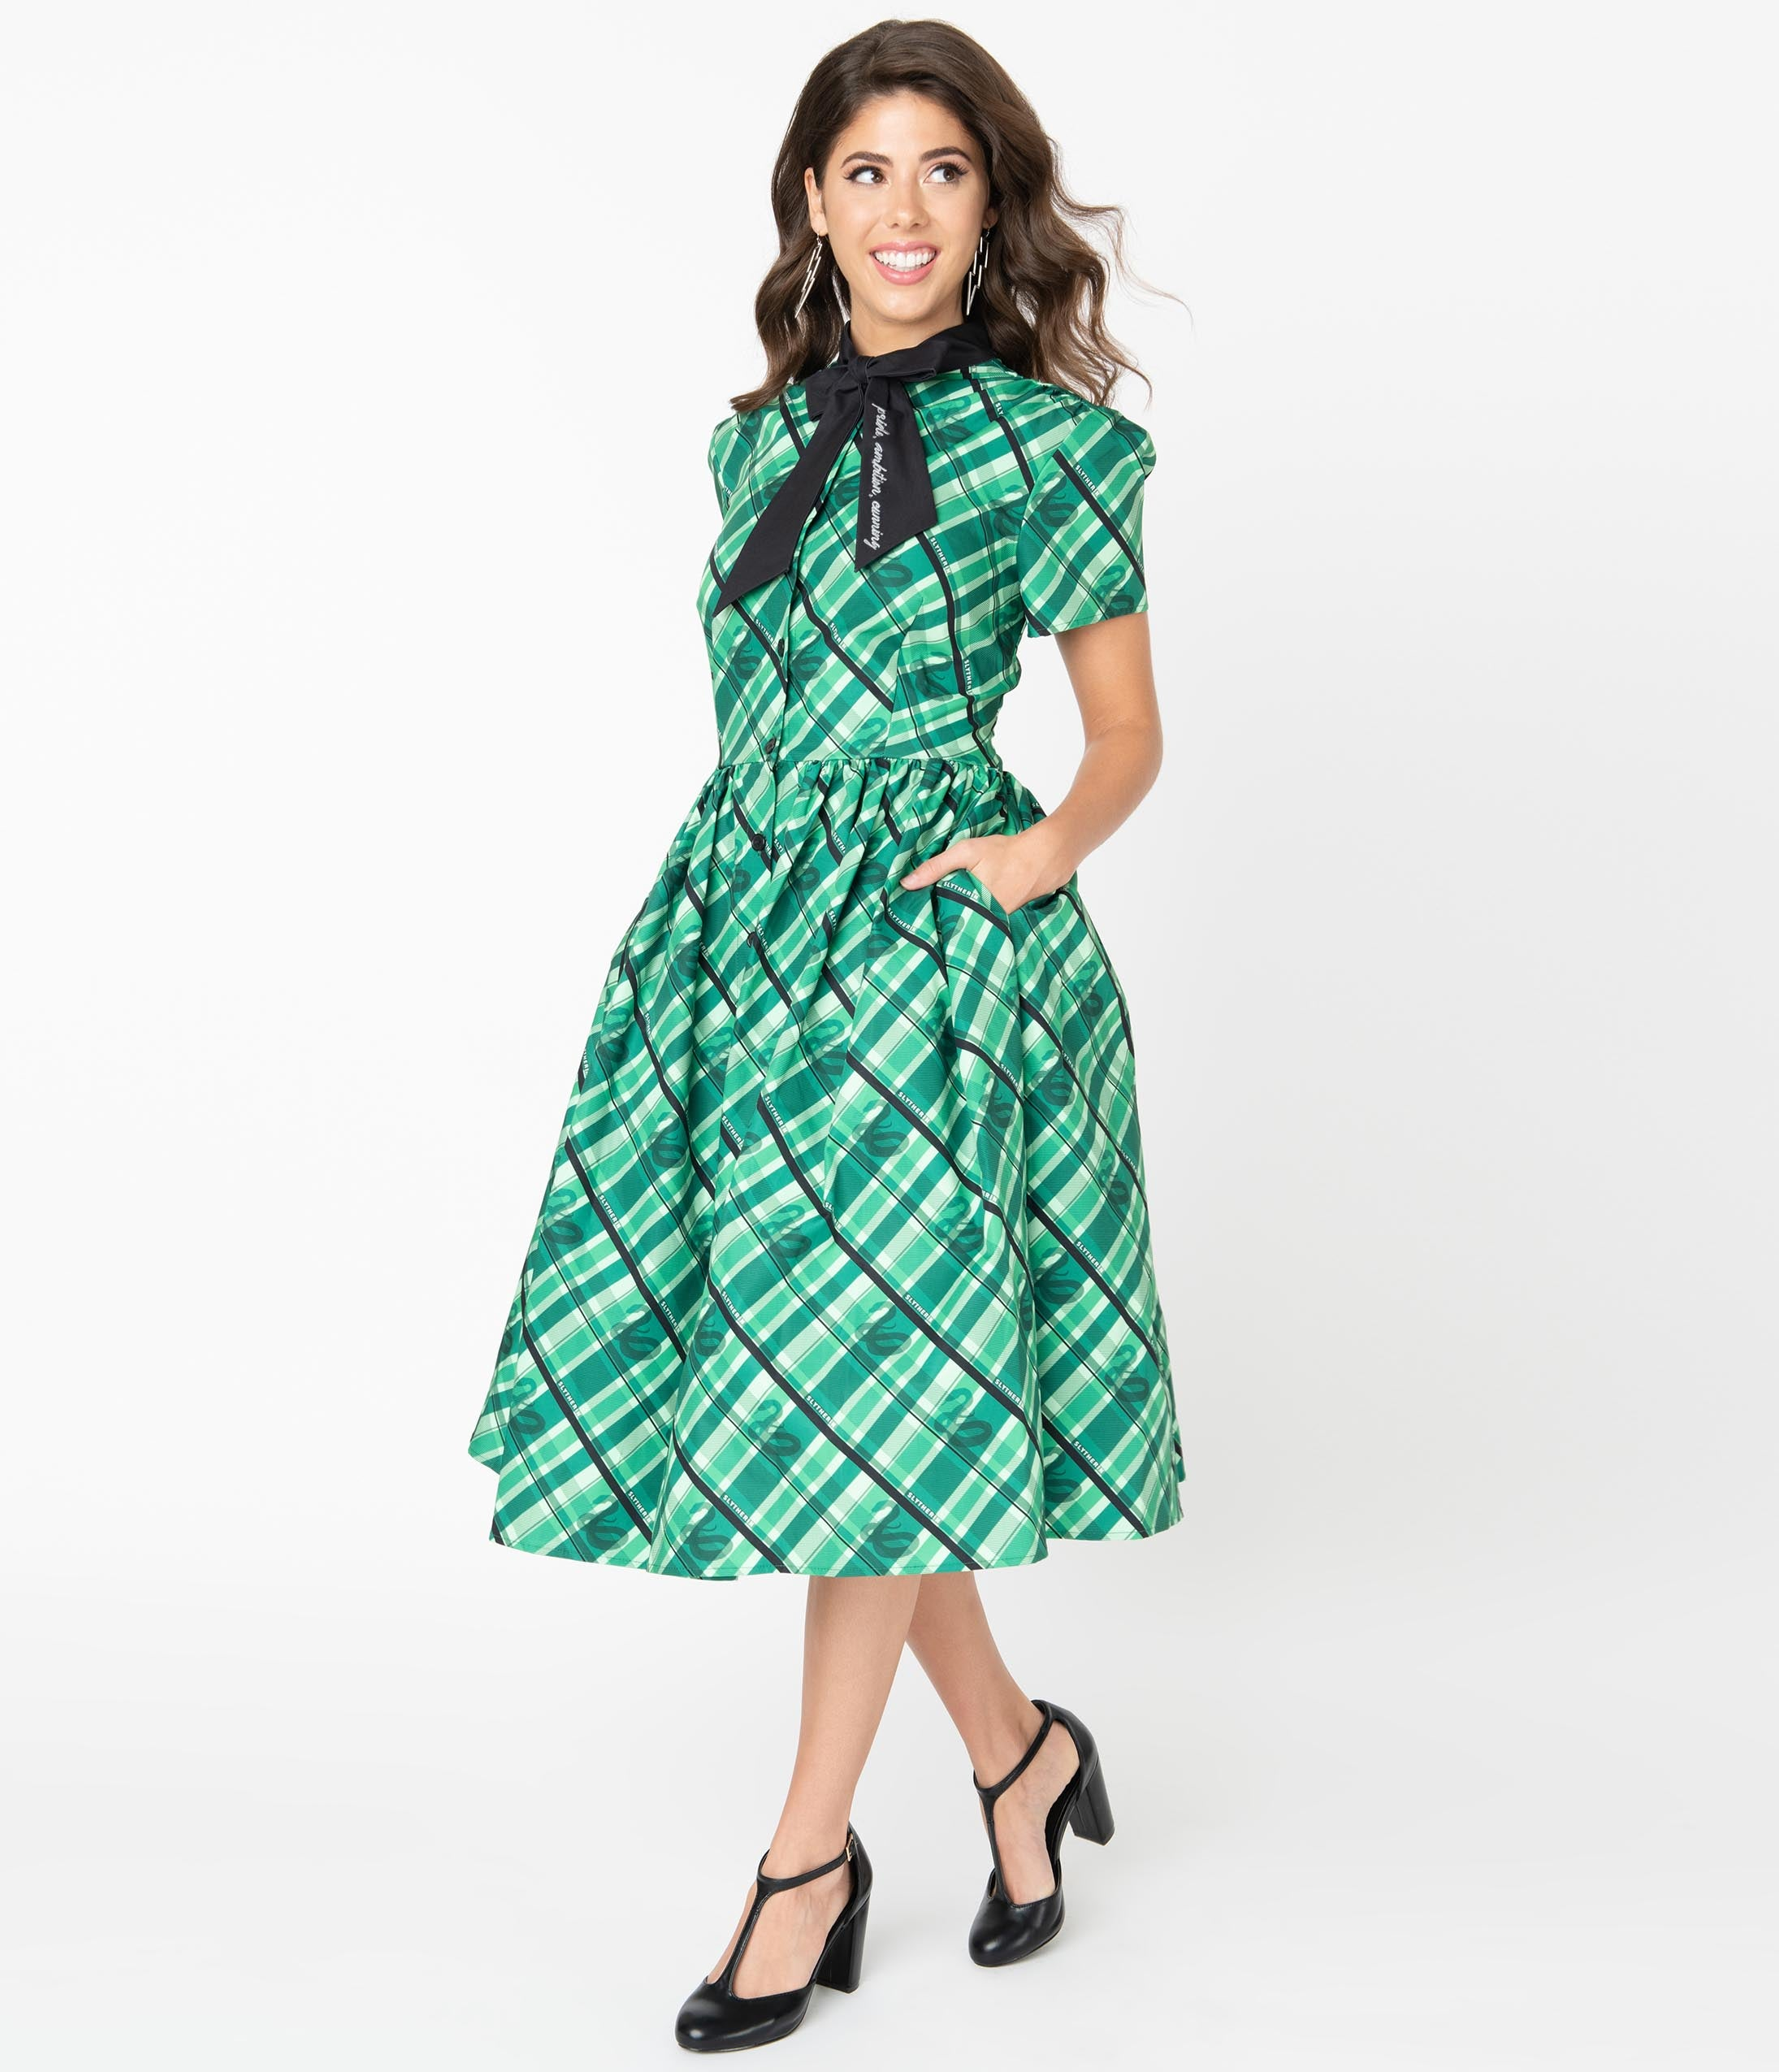 Vintage Shirtwaist Dress History Harry Potter X Unique Vintage Slytherin Cora Swing Dress $128.00 AT vintagedancer.com